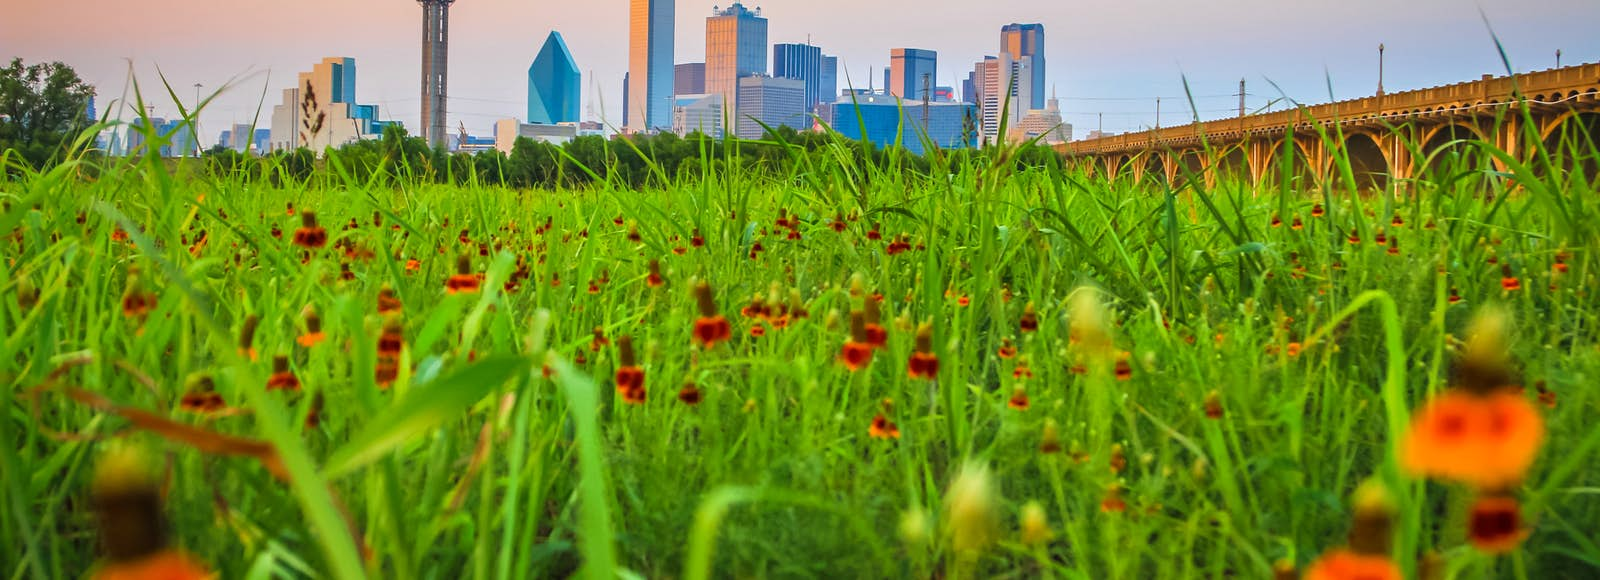 June 2017 Things To Do In Dallas 10 Top Picks